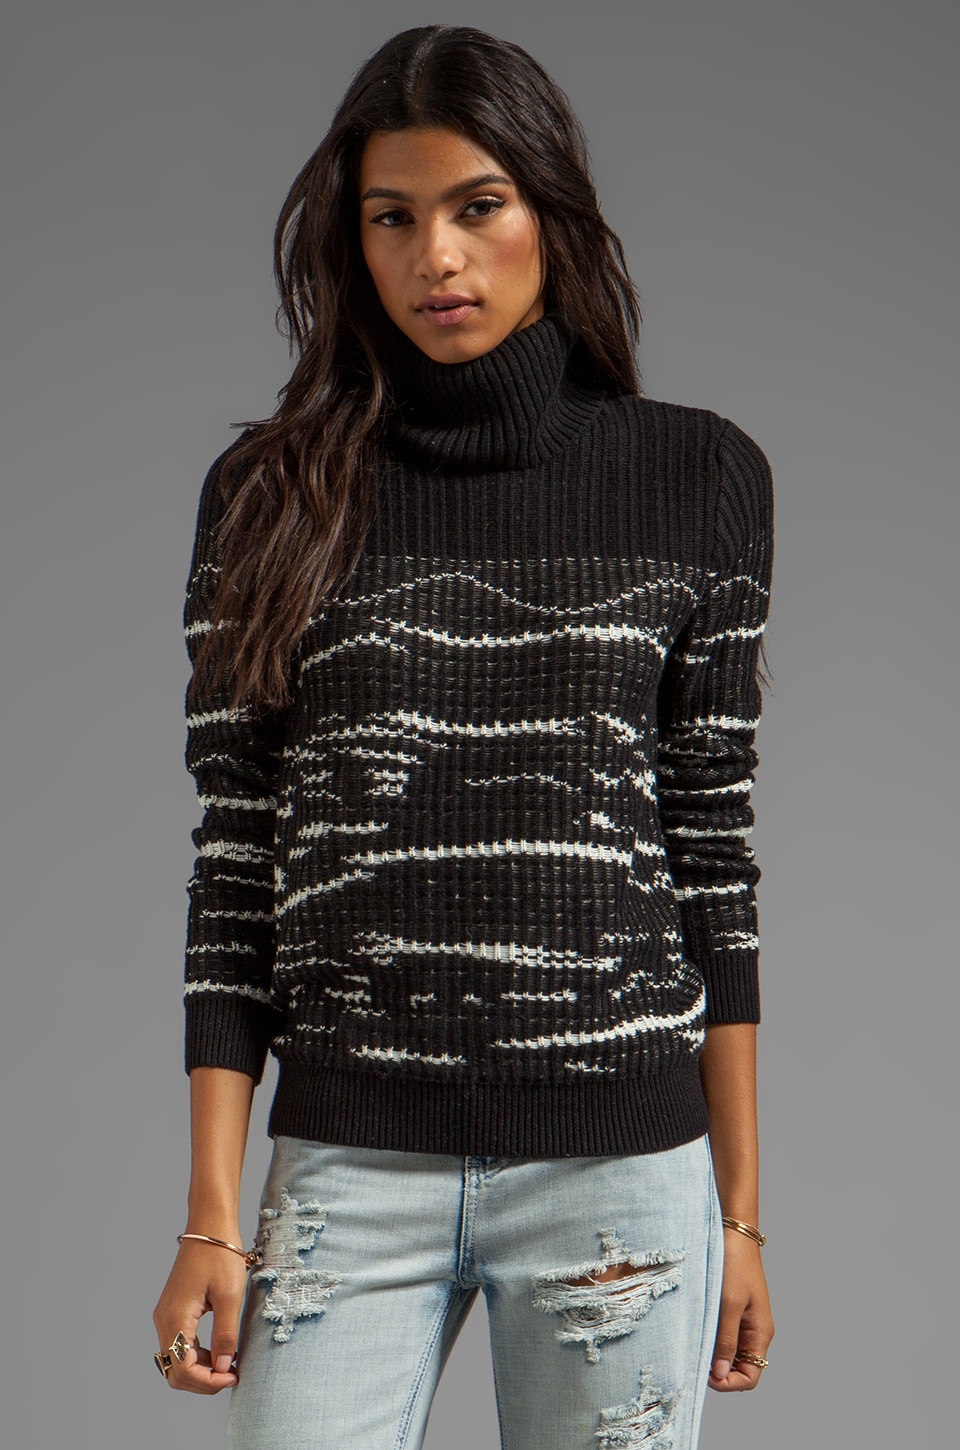 SHAE Reverse Stitch Turtleneck Pullover in Black/Warm White